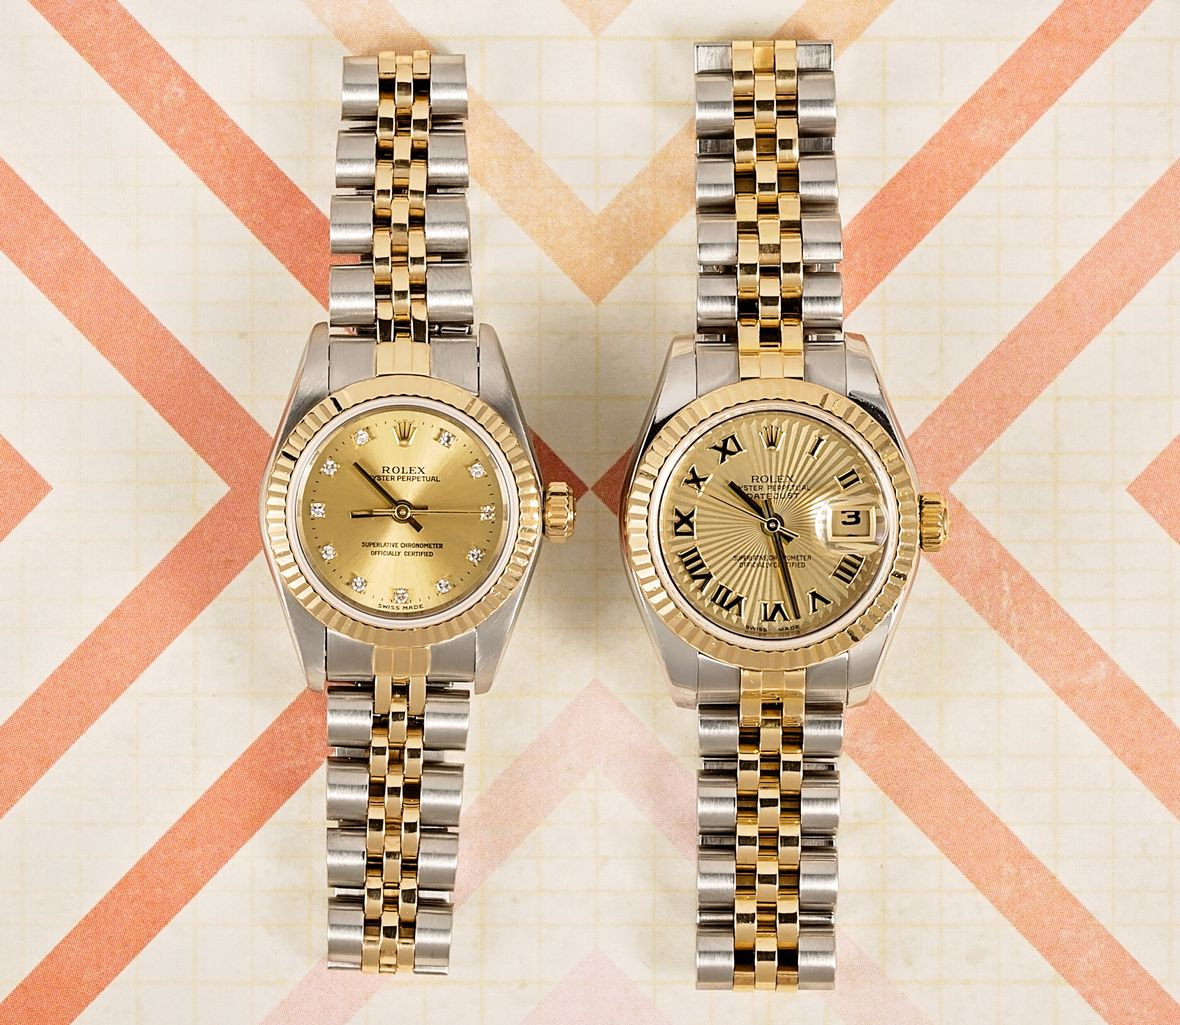 Rolex Lady-Datejust Watches Rolesor Two-Tone Steel and Gold